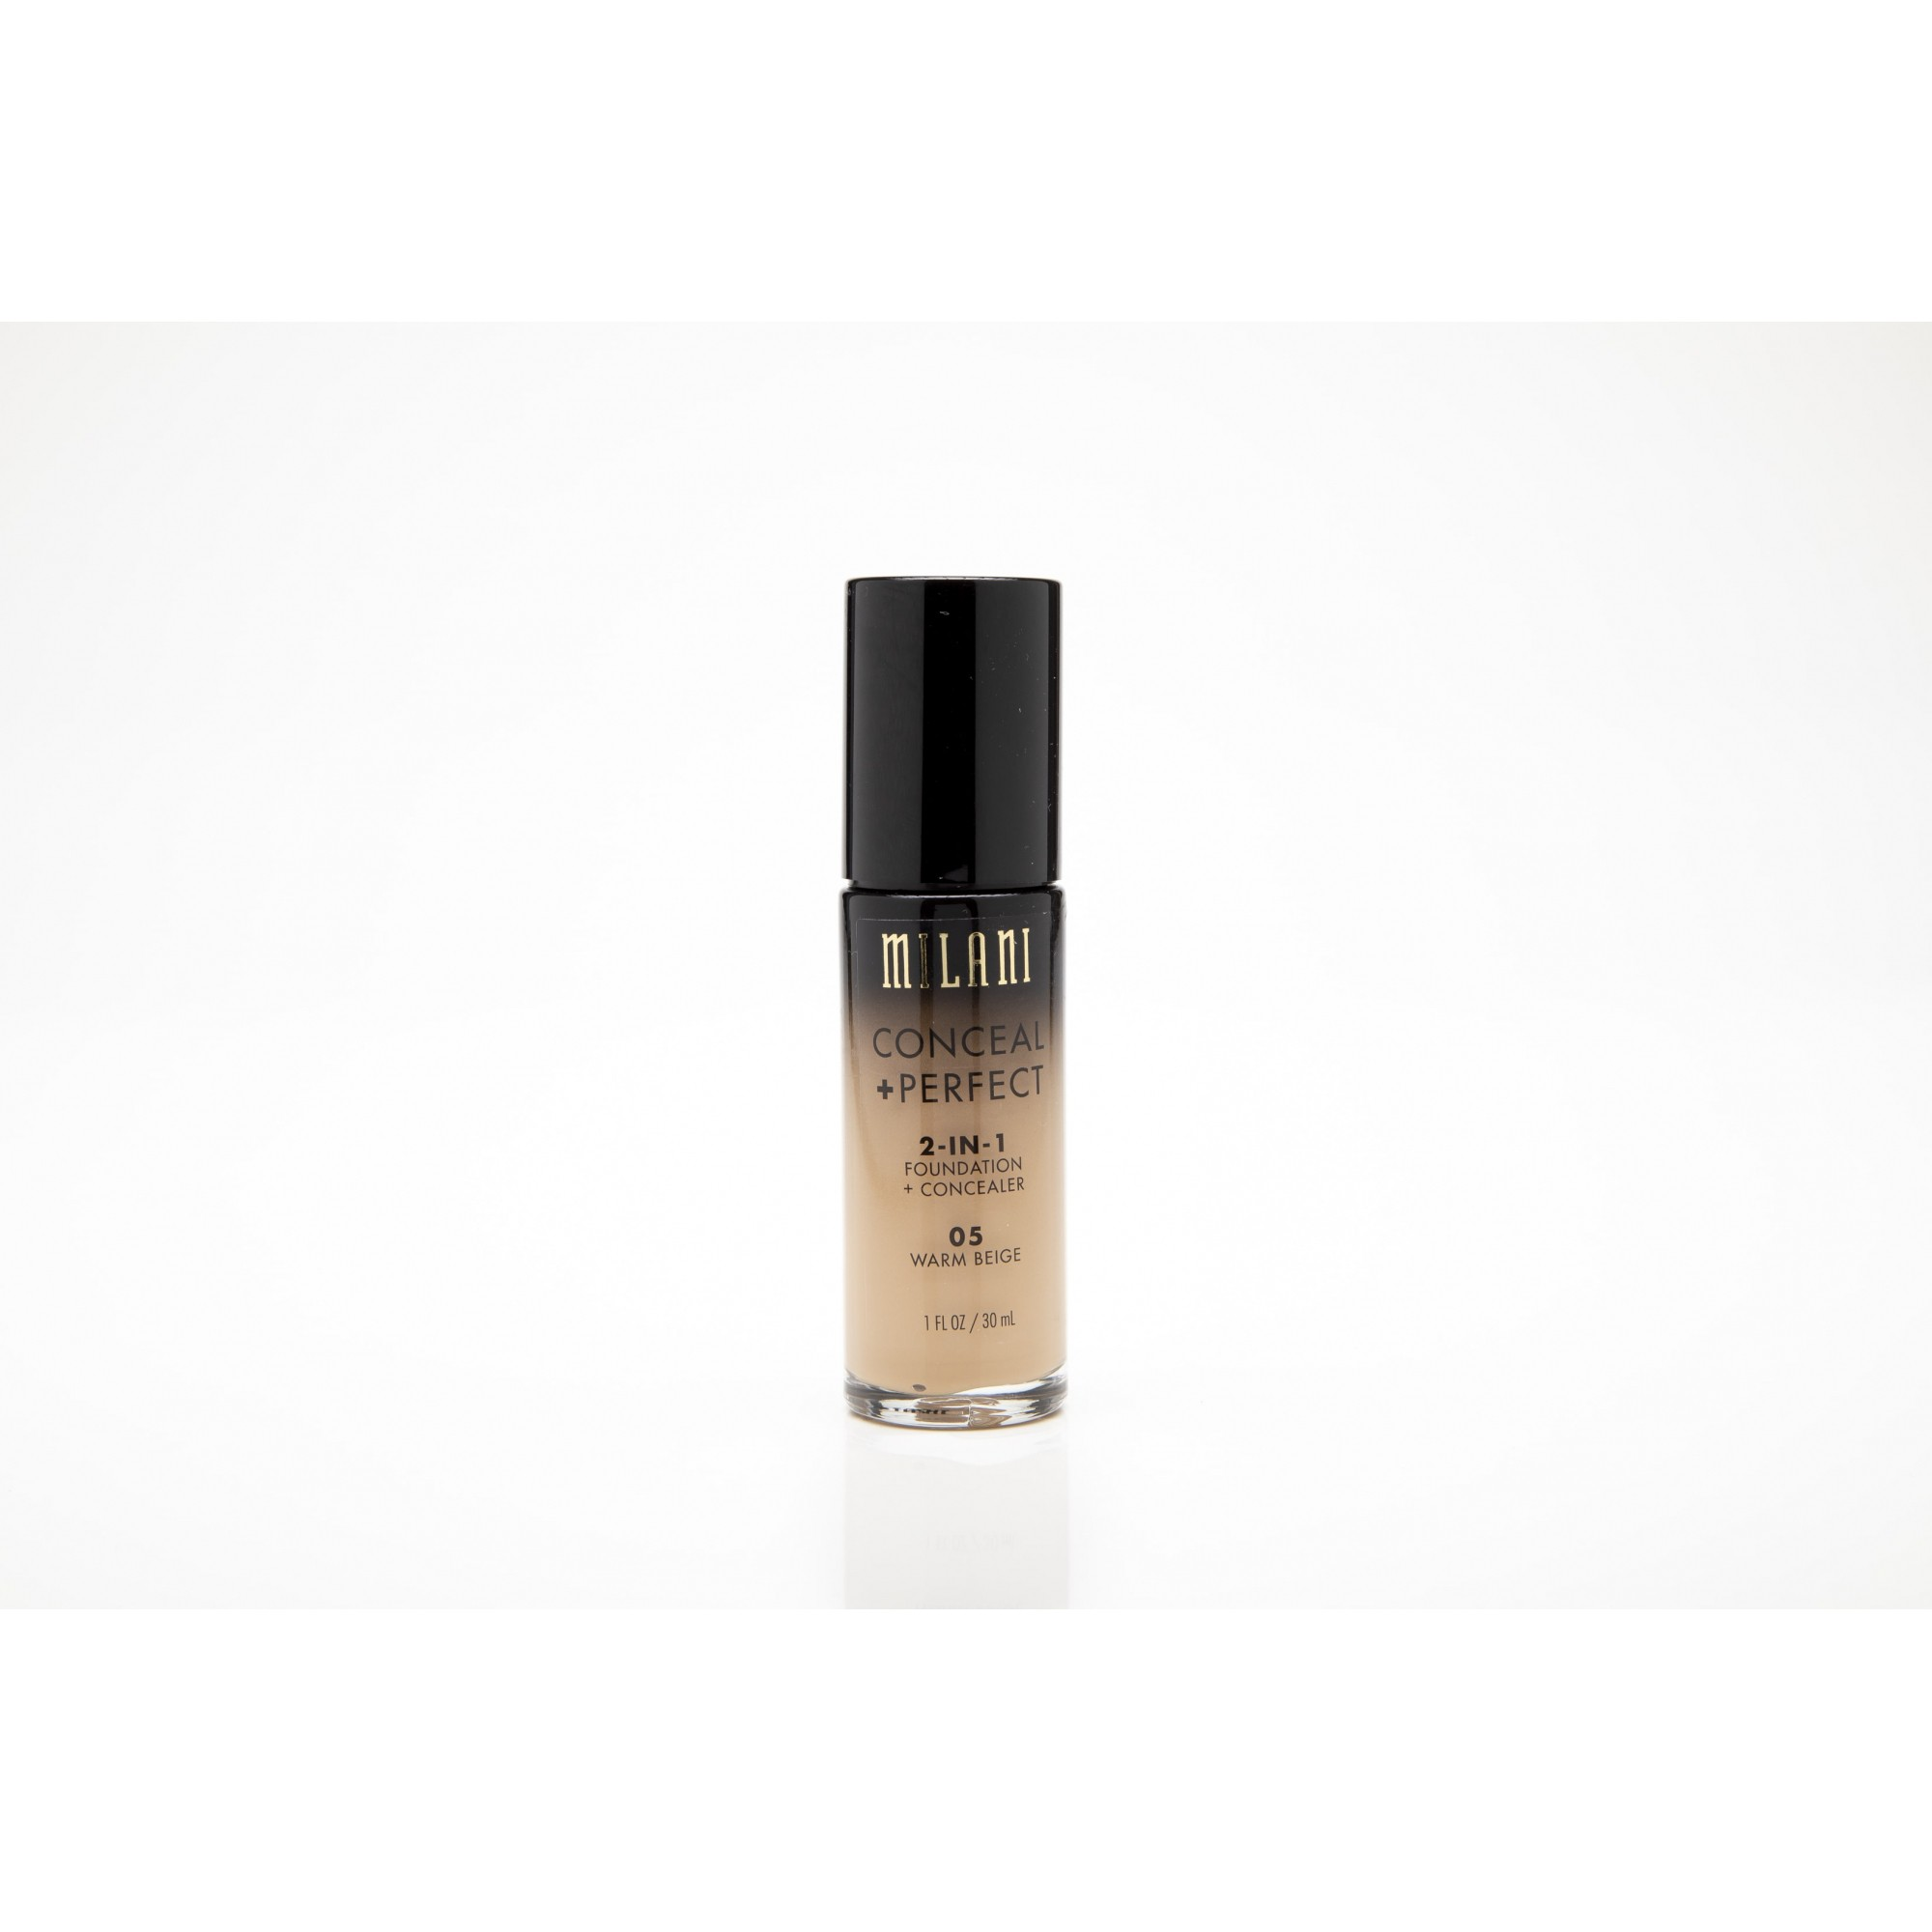 Base milani conceal + perfect 2-in-1 05 warm beige